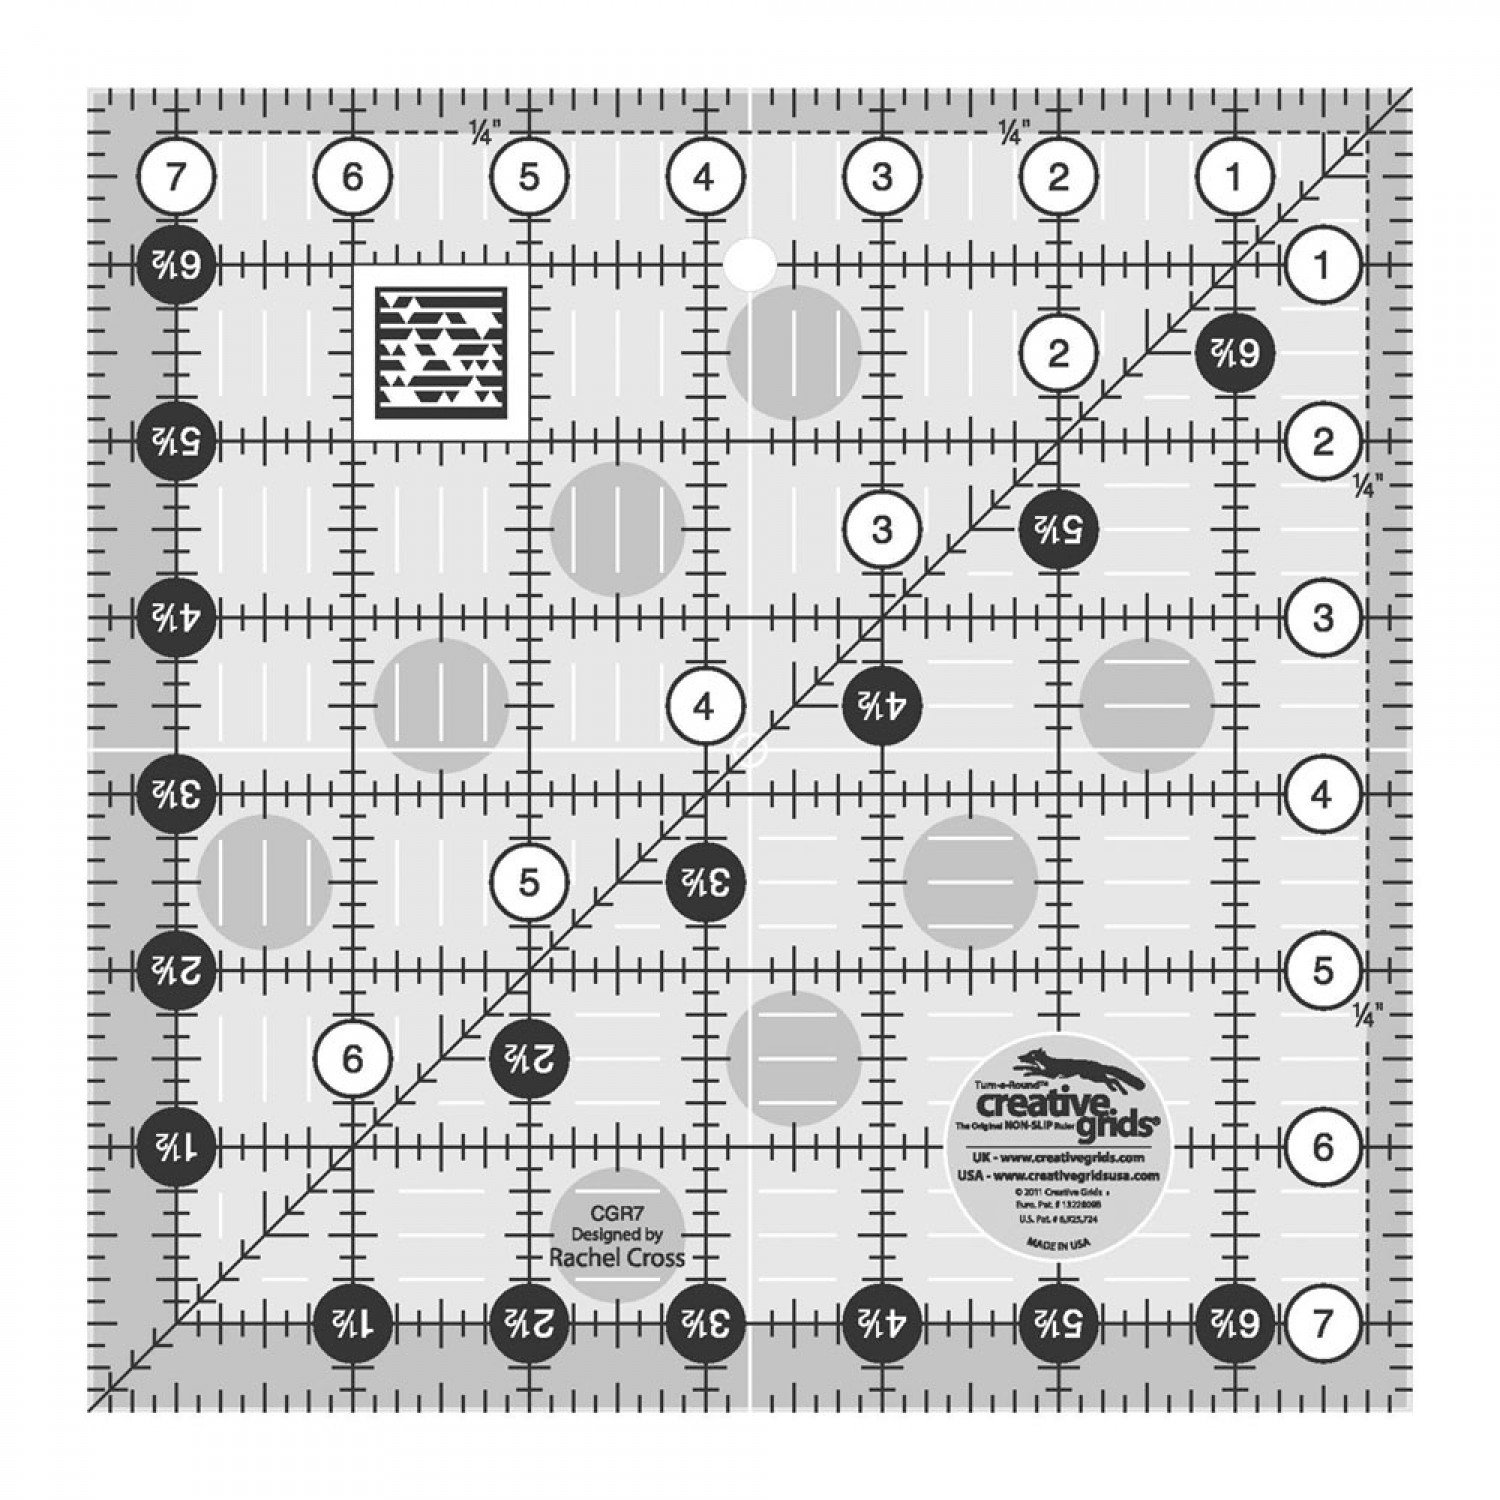 CGR7 Creative Grid Square Ruler